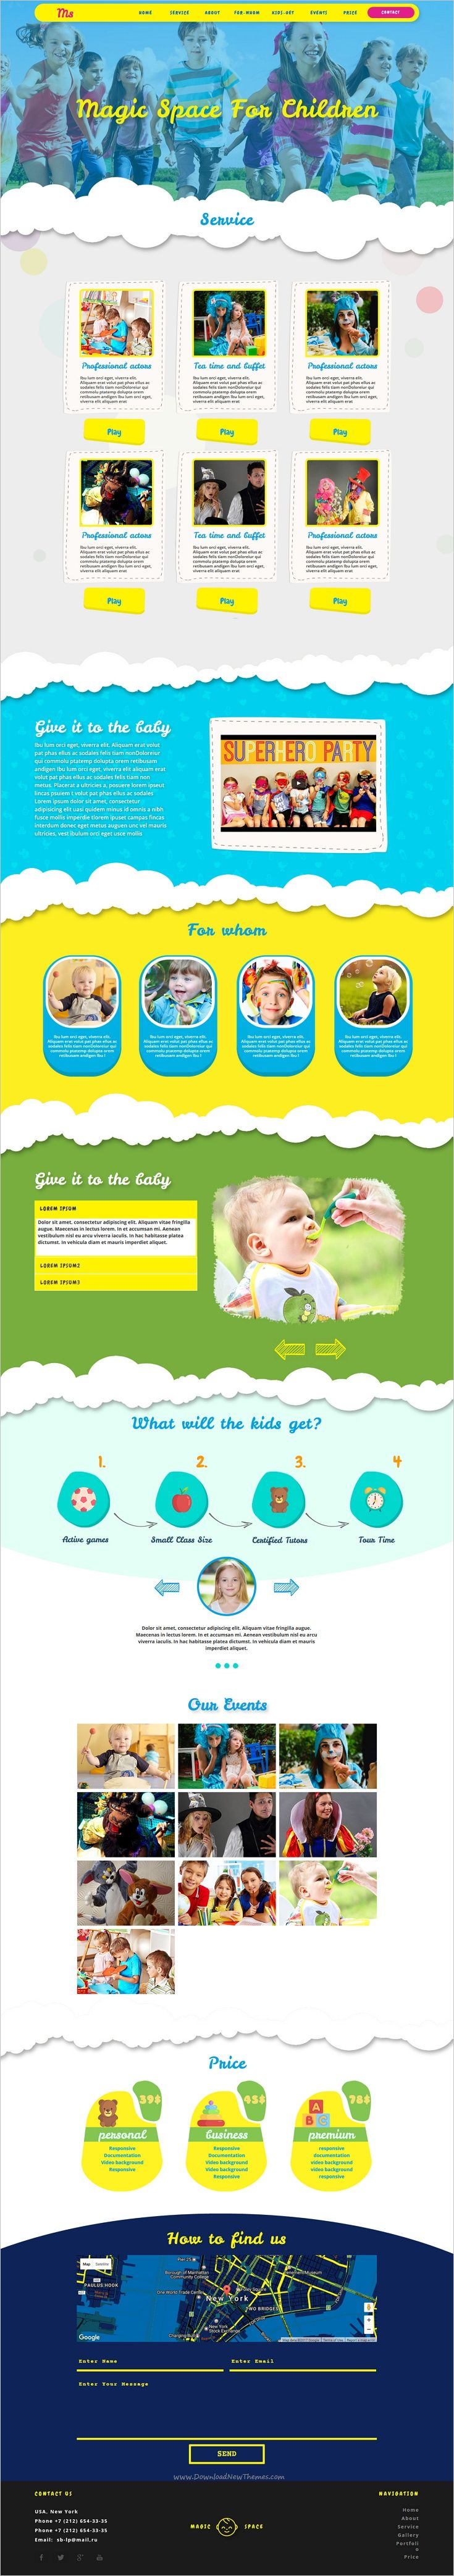 Ms is beautifully design multipurpose #Adobe #Muse template for #kids, picnic, parties, #events, fundraisers, schools websites download now➩ https://themeforest.net/item/kids-party-eventsmuse-template/19219341?ref=Datasata